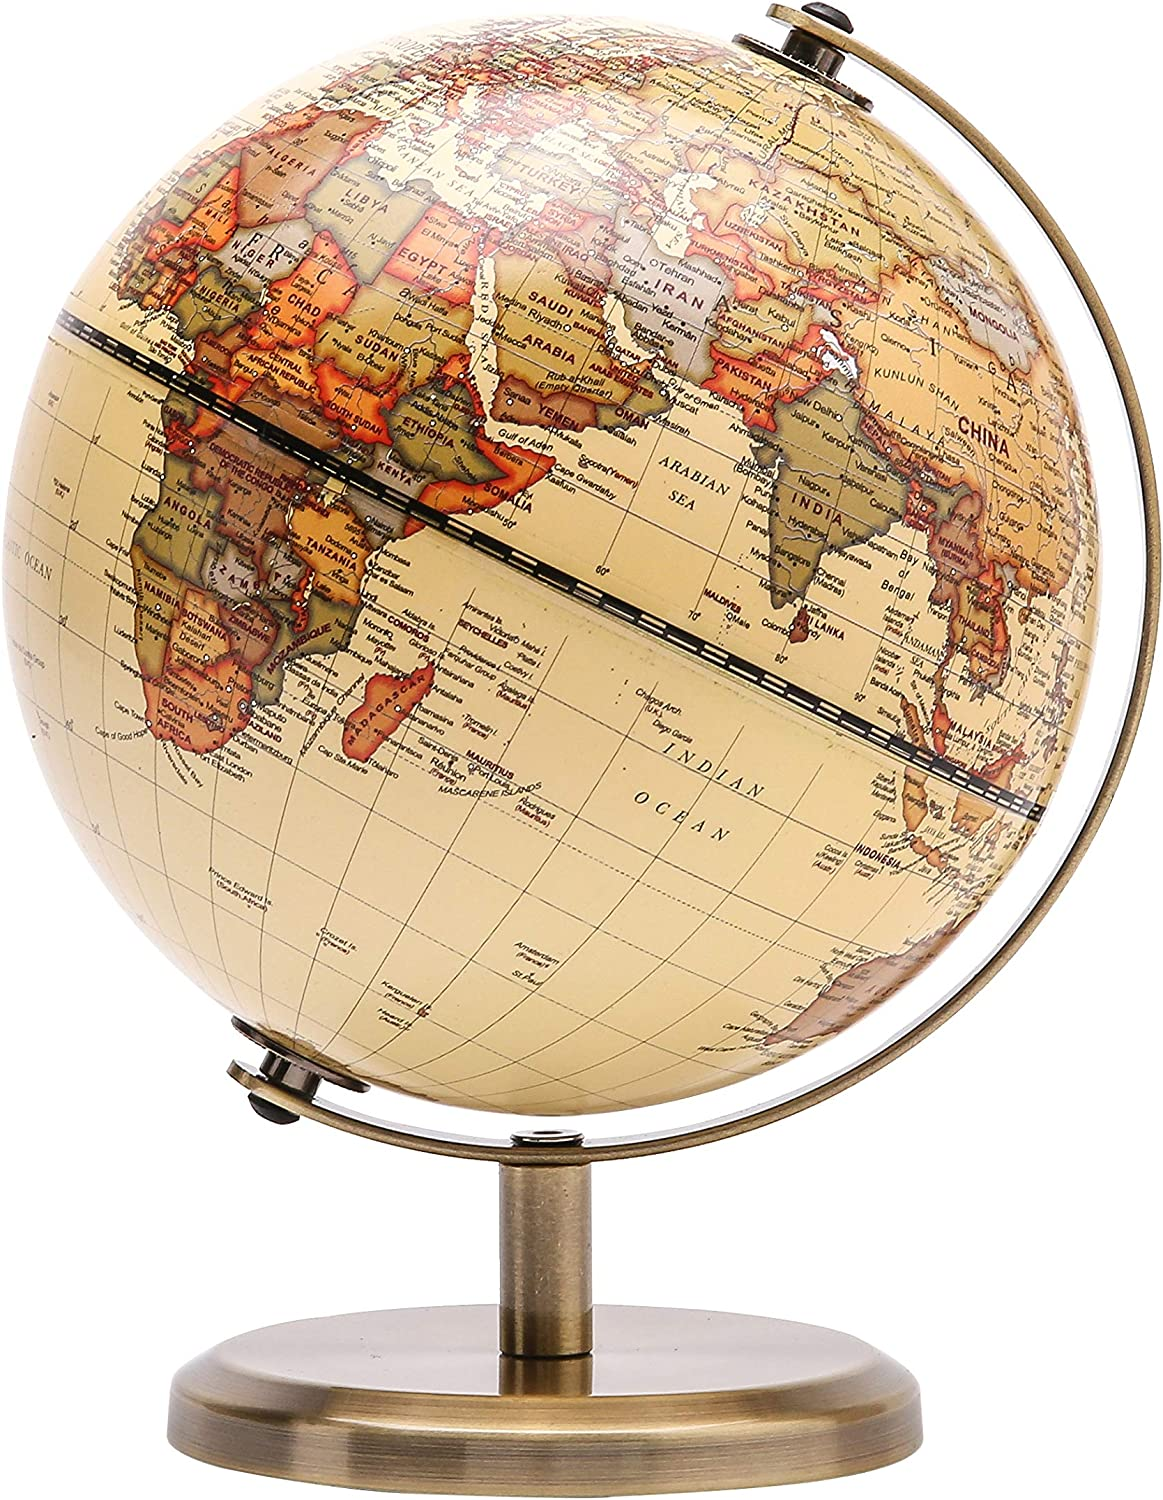 "Exerz Antique Globe Dia 5.5-inch / 14CM - Educational/Geographic/Modern Desktop Decoration - Stainless Steel Arc and Base - for School, Home, and Office (Antique 5.5"")"